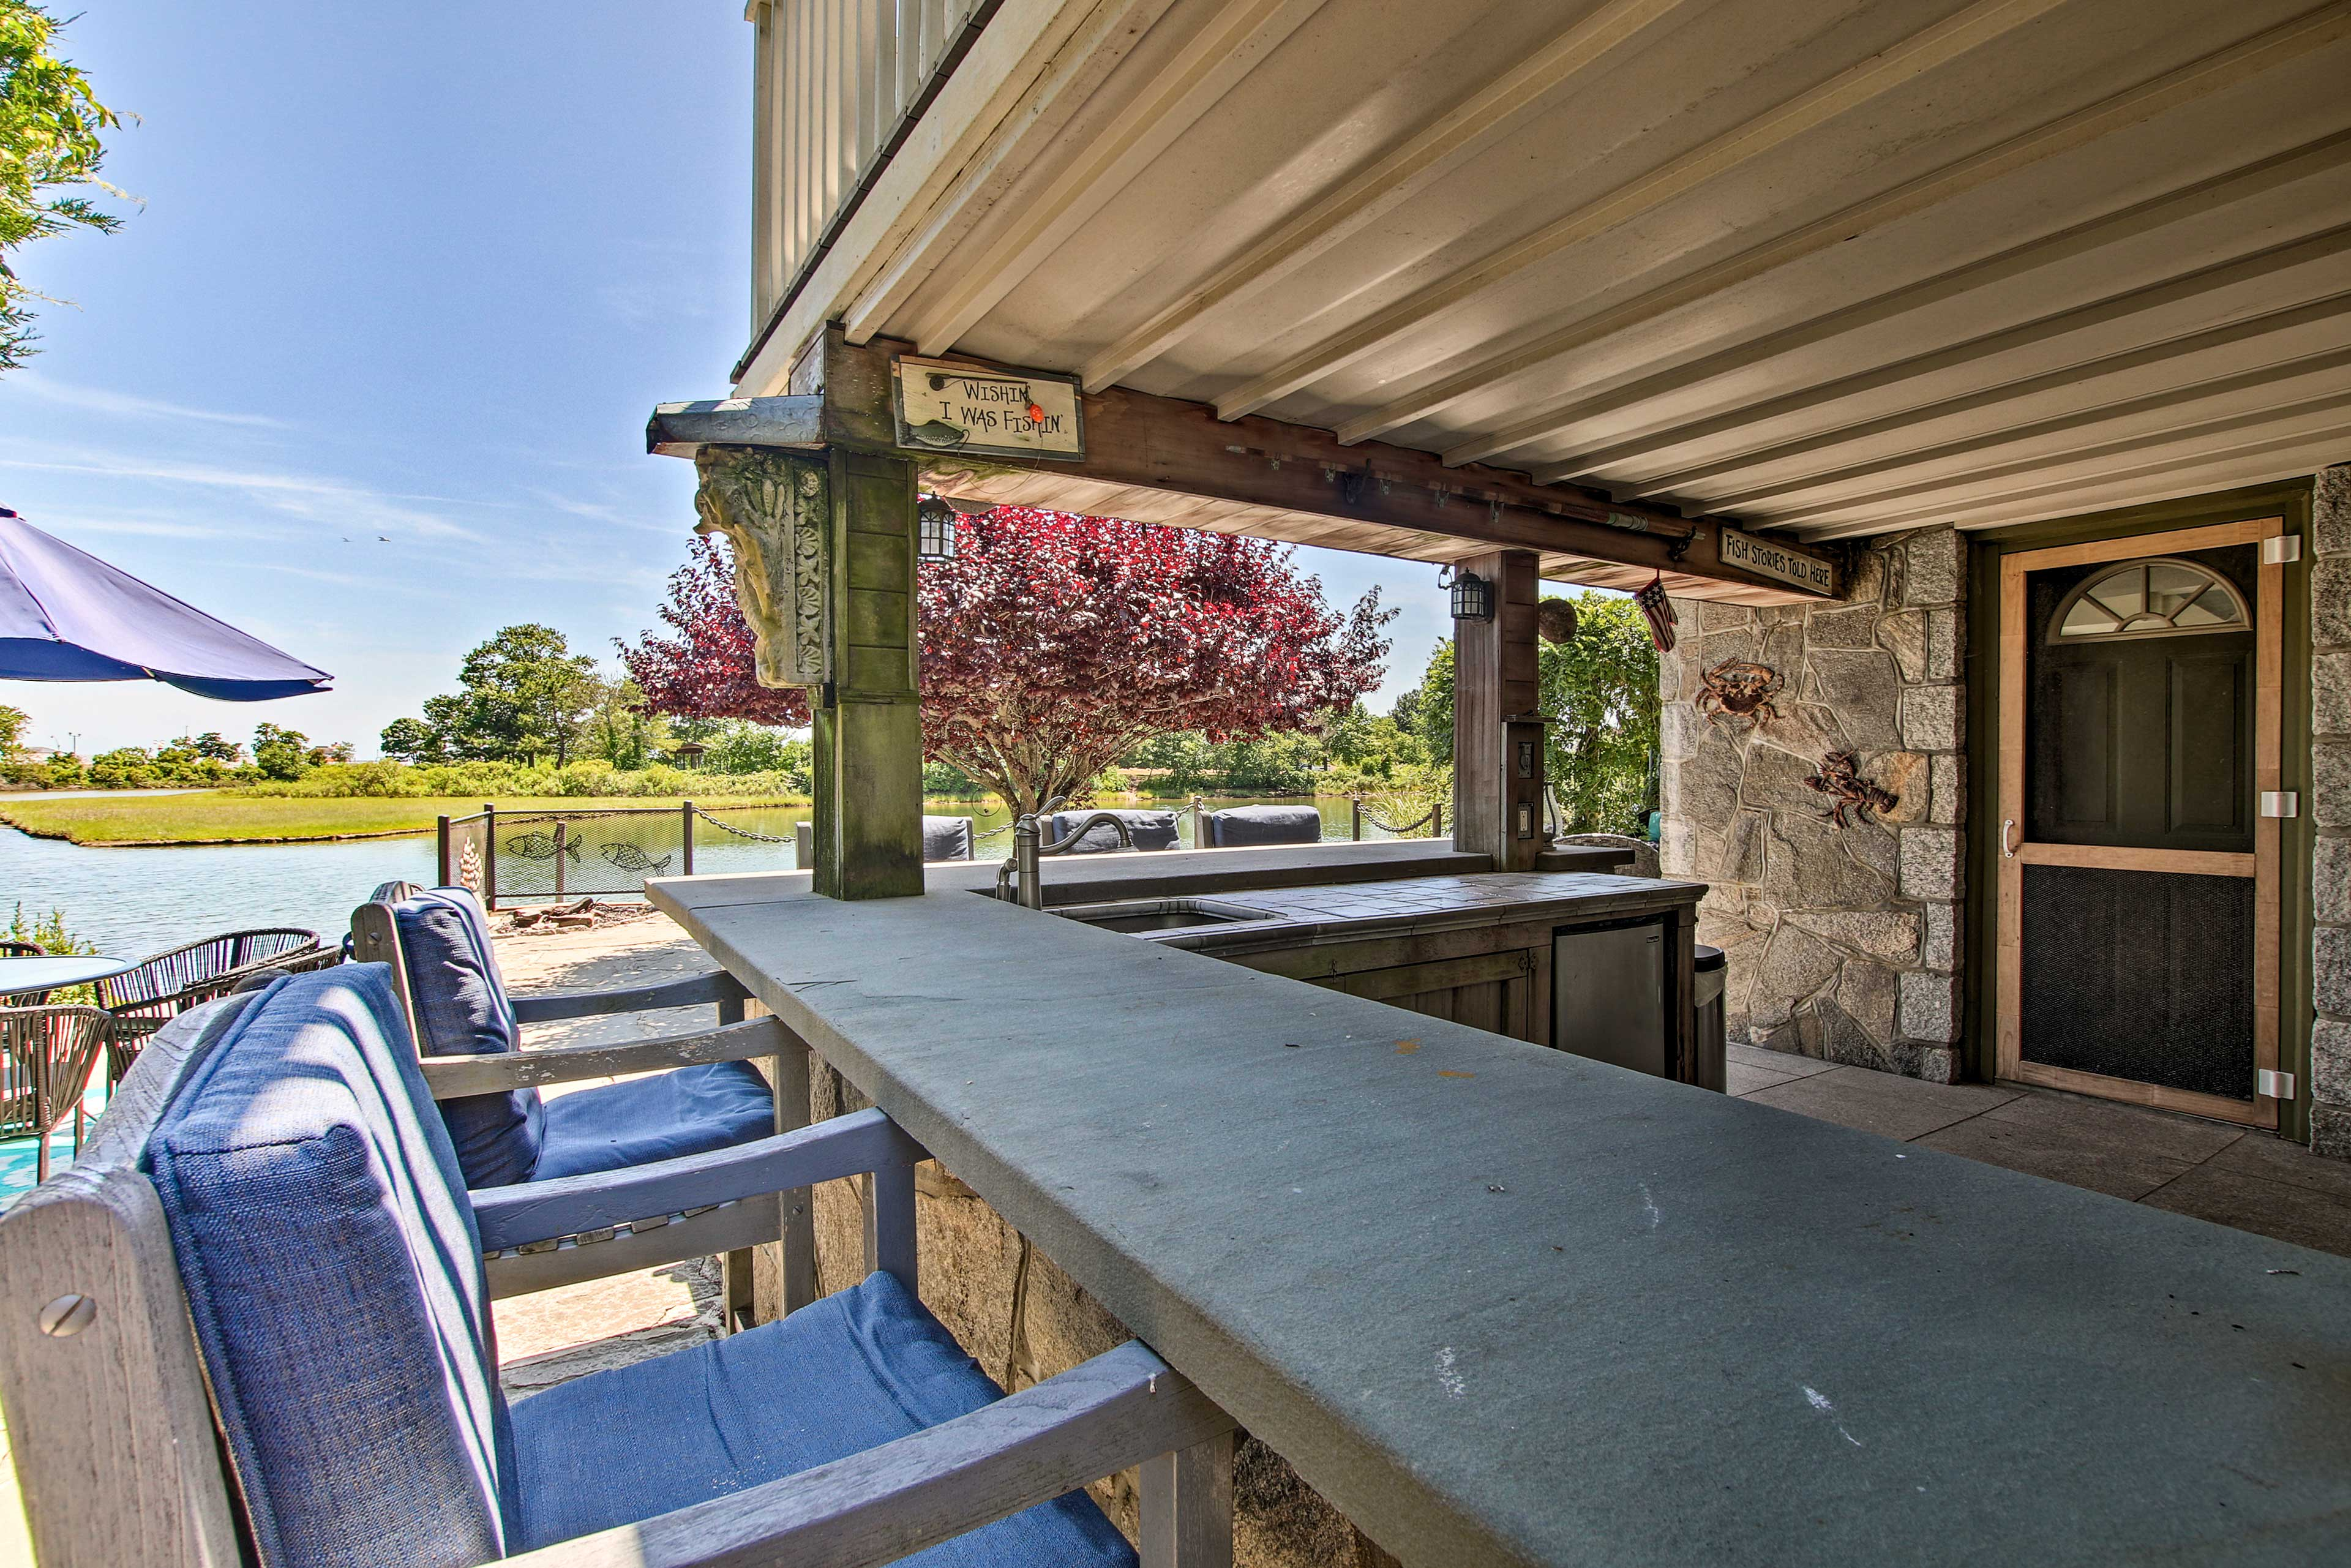 This outdoor kitchen with seating makes it easy to entertain.